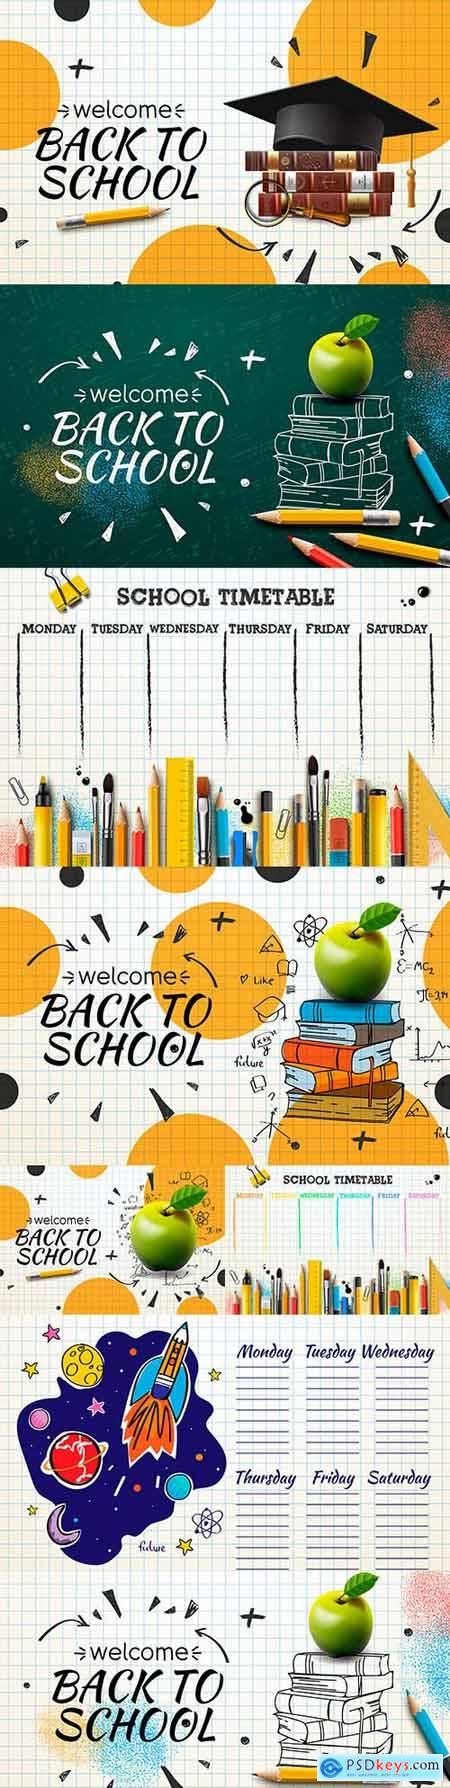 Back to school and accessories collection illustration 38